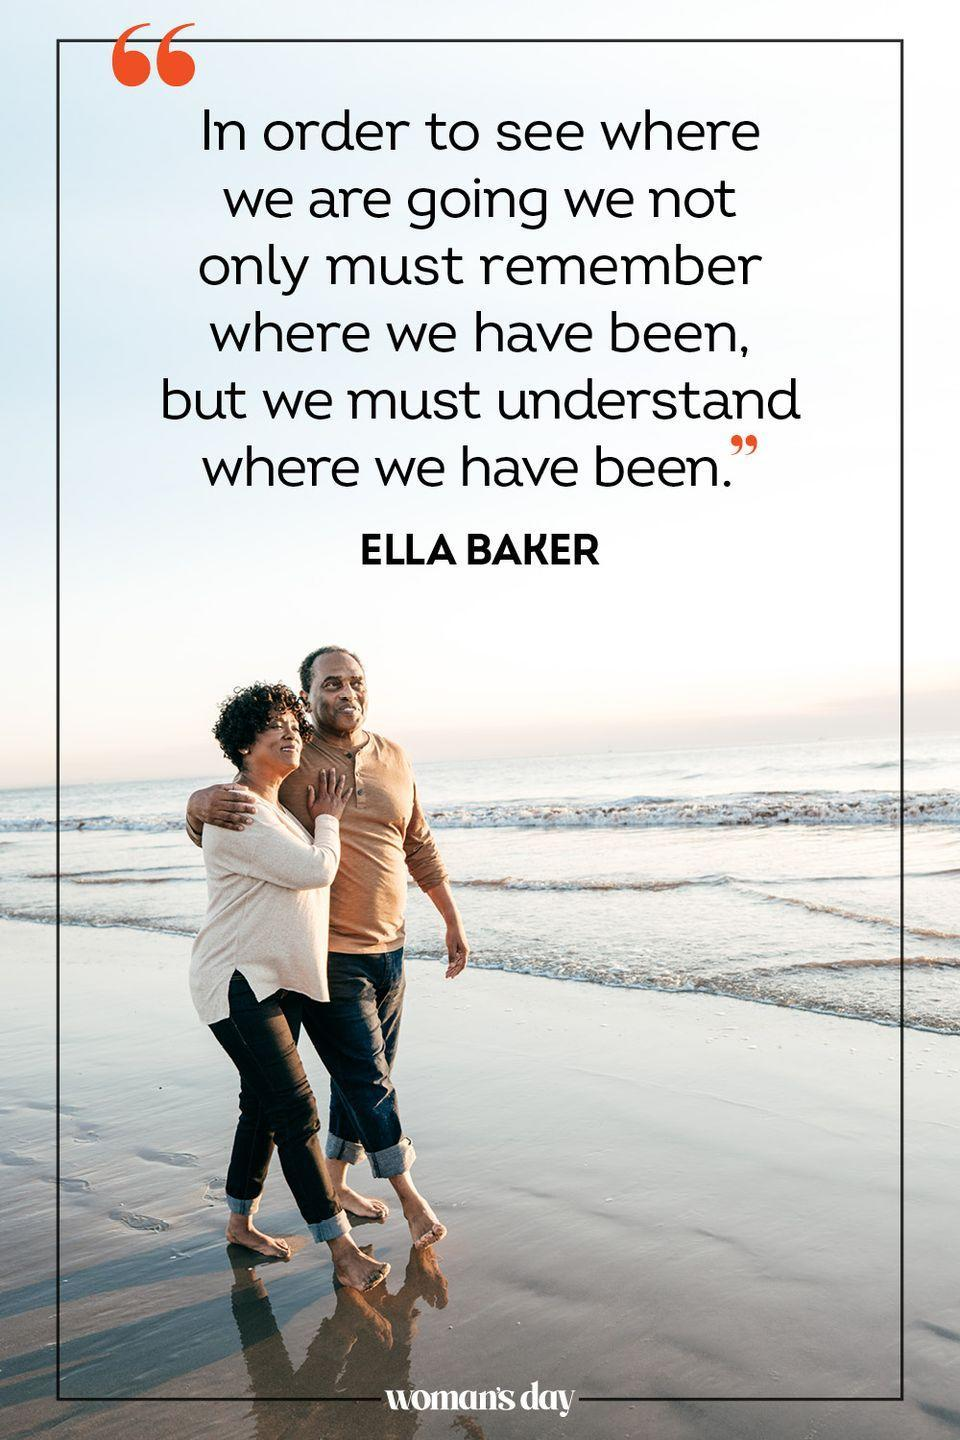 """<p>""""In order to see where we are going we not only must remember where we have been, but we must understand where we have been."""" — Ella Baker</p>"""